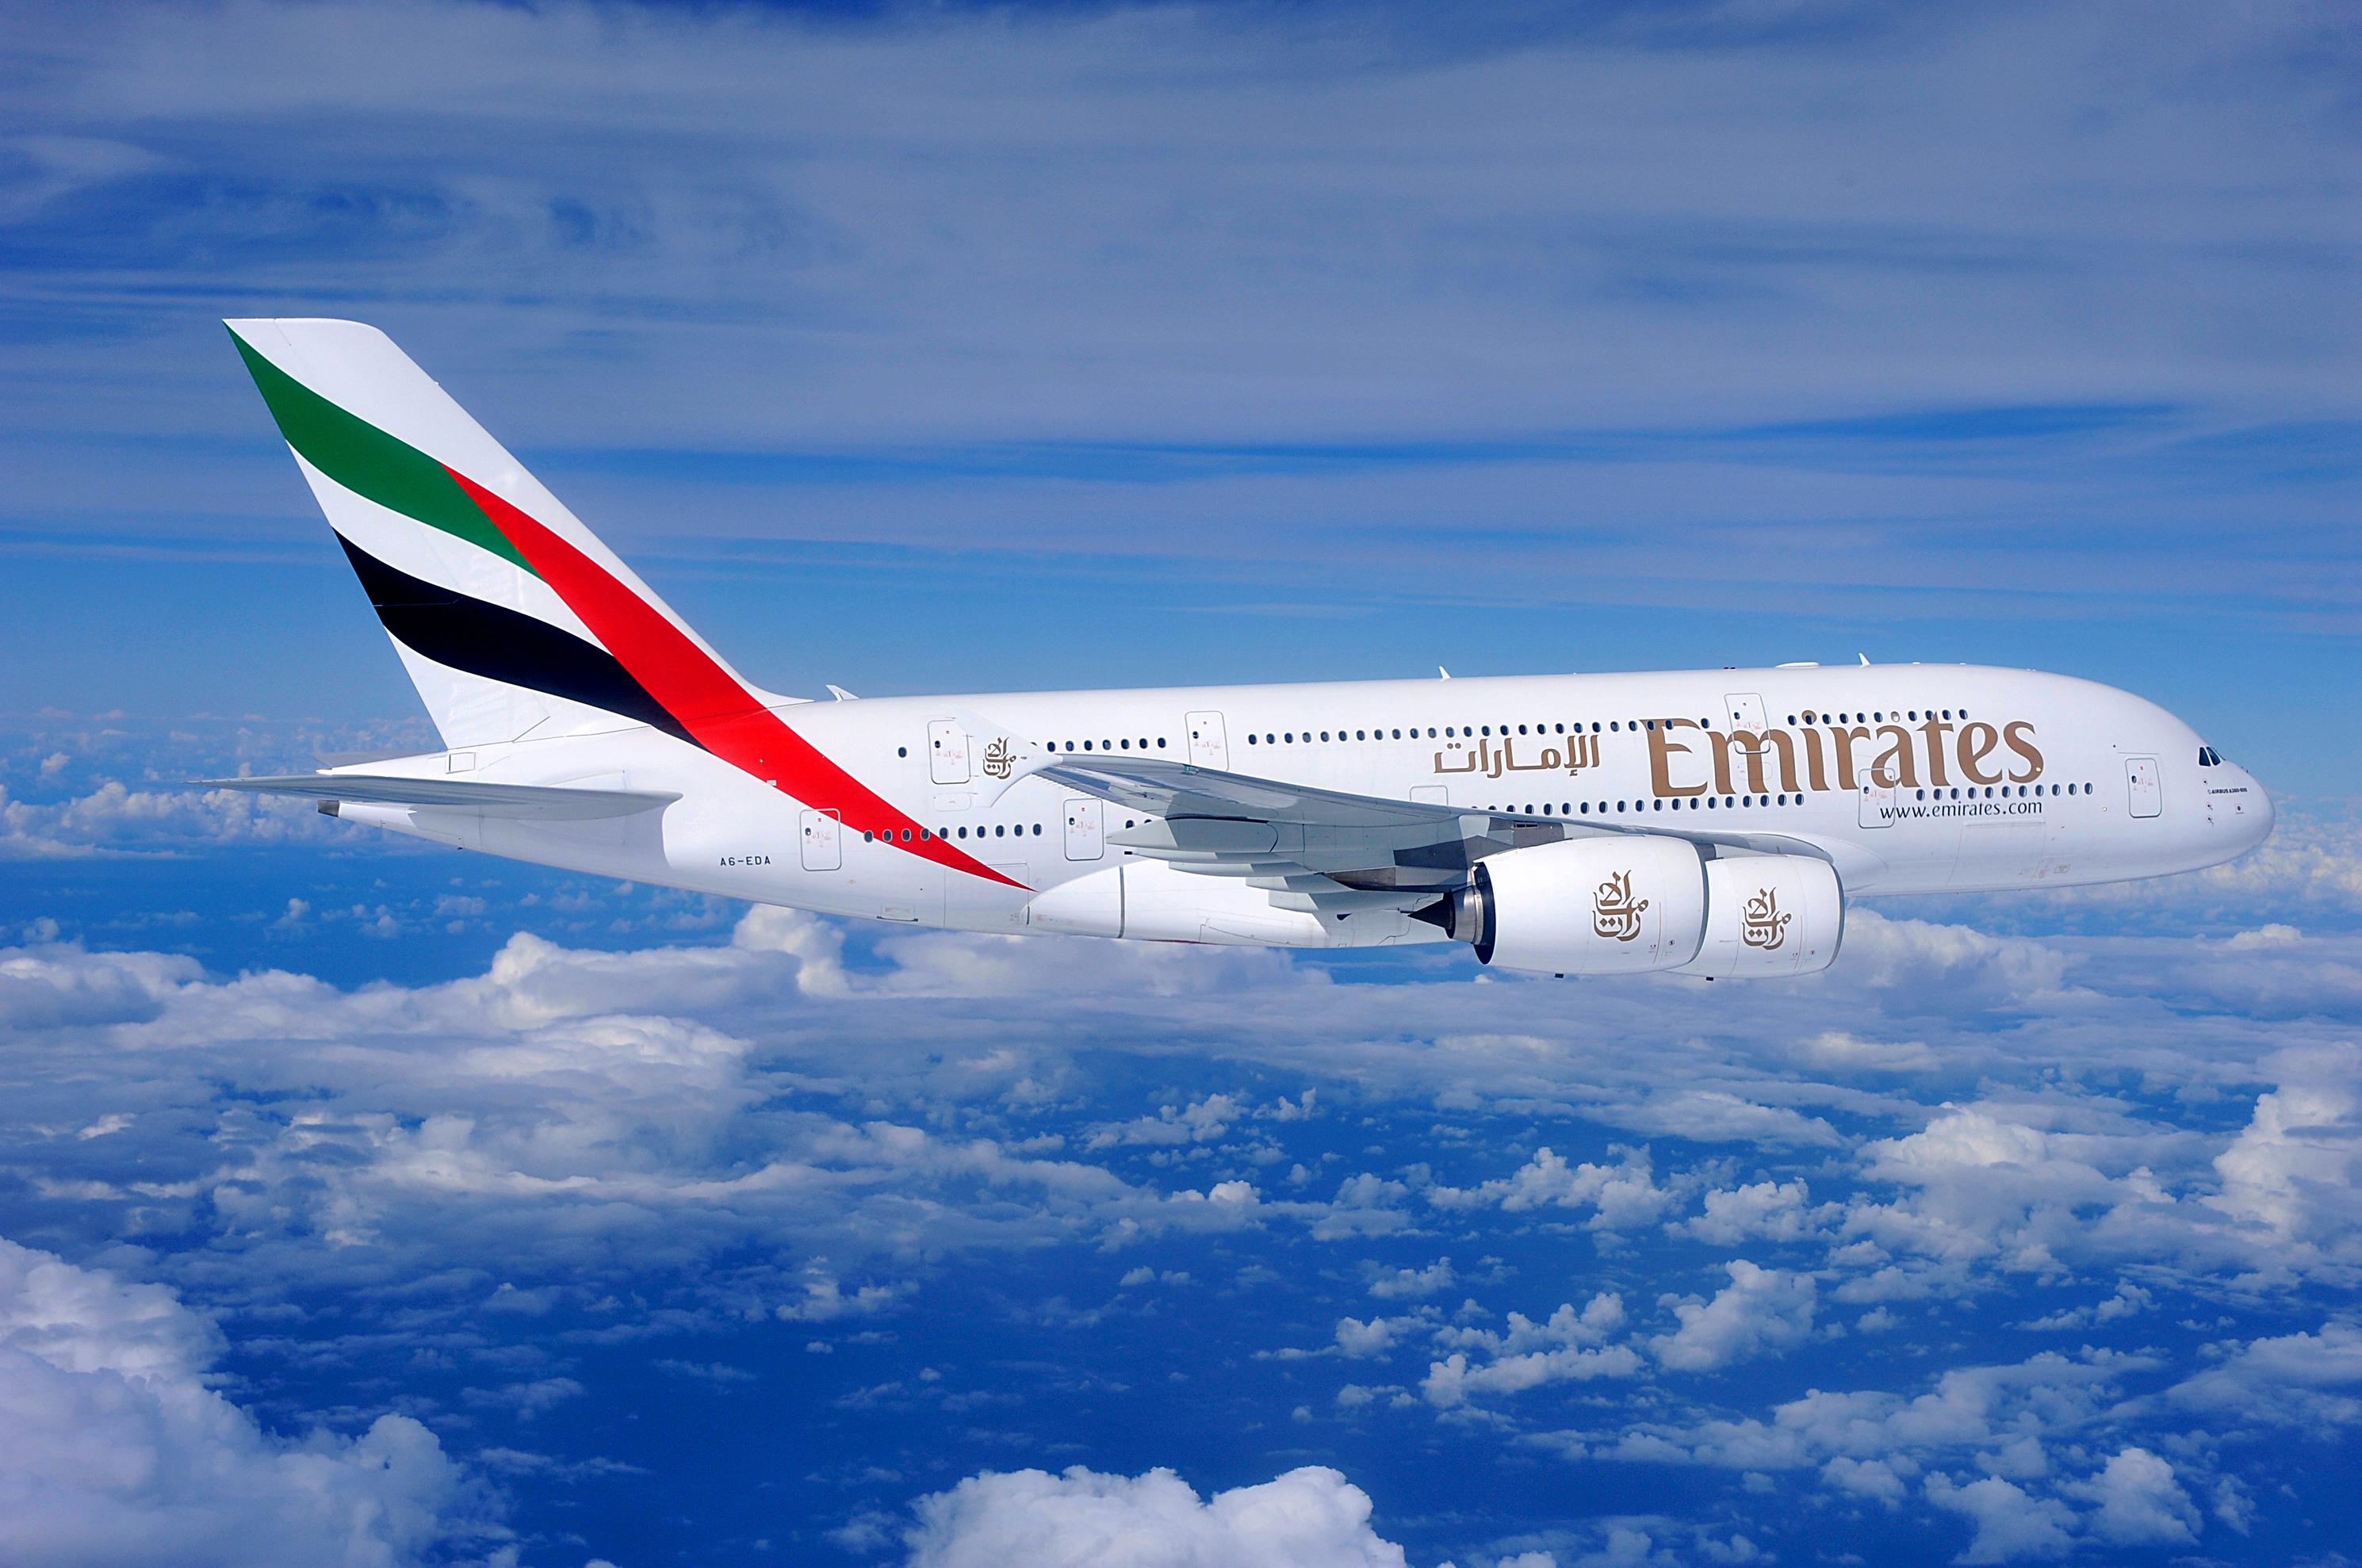 Airbus marks 10-year anniversary of A380, world's largest civil aircraft